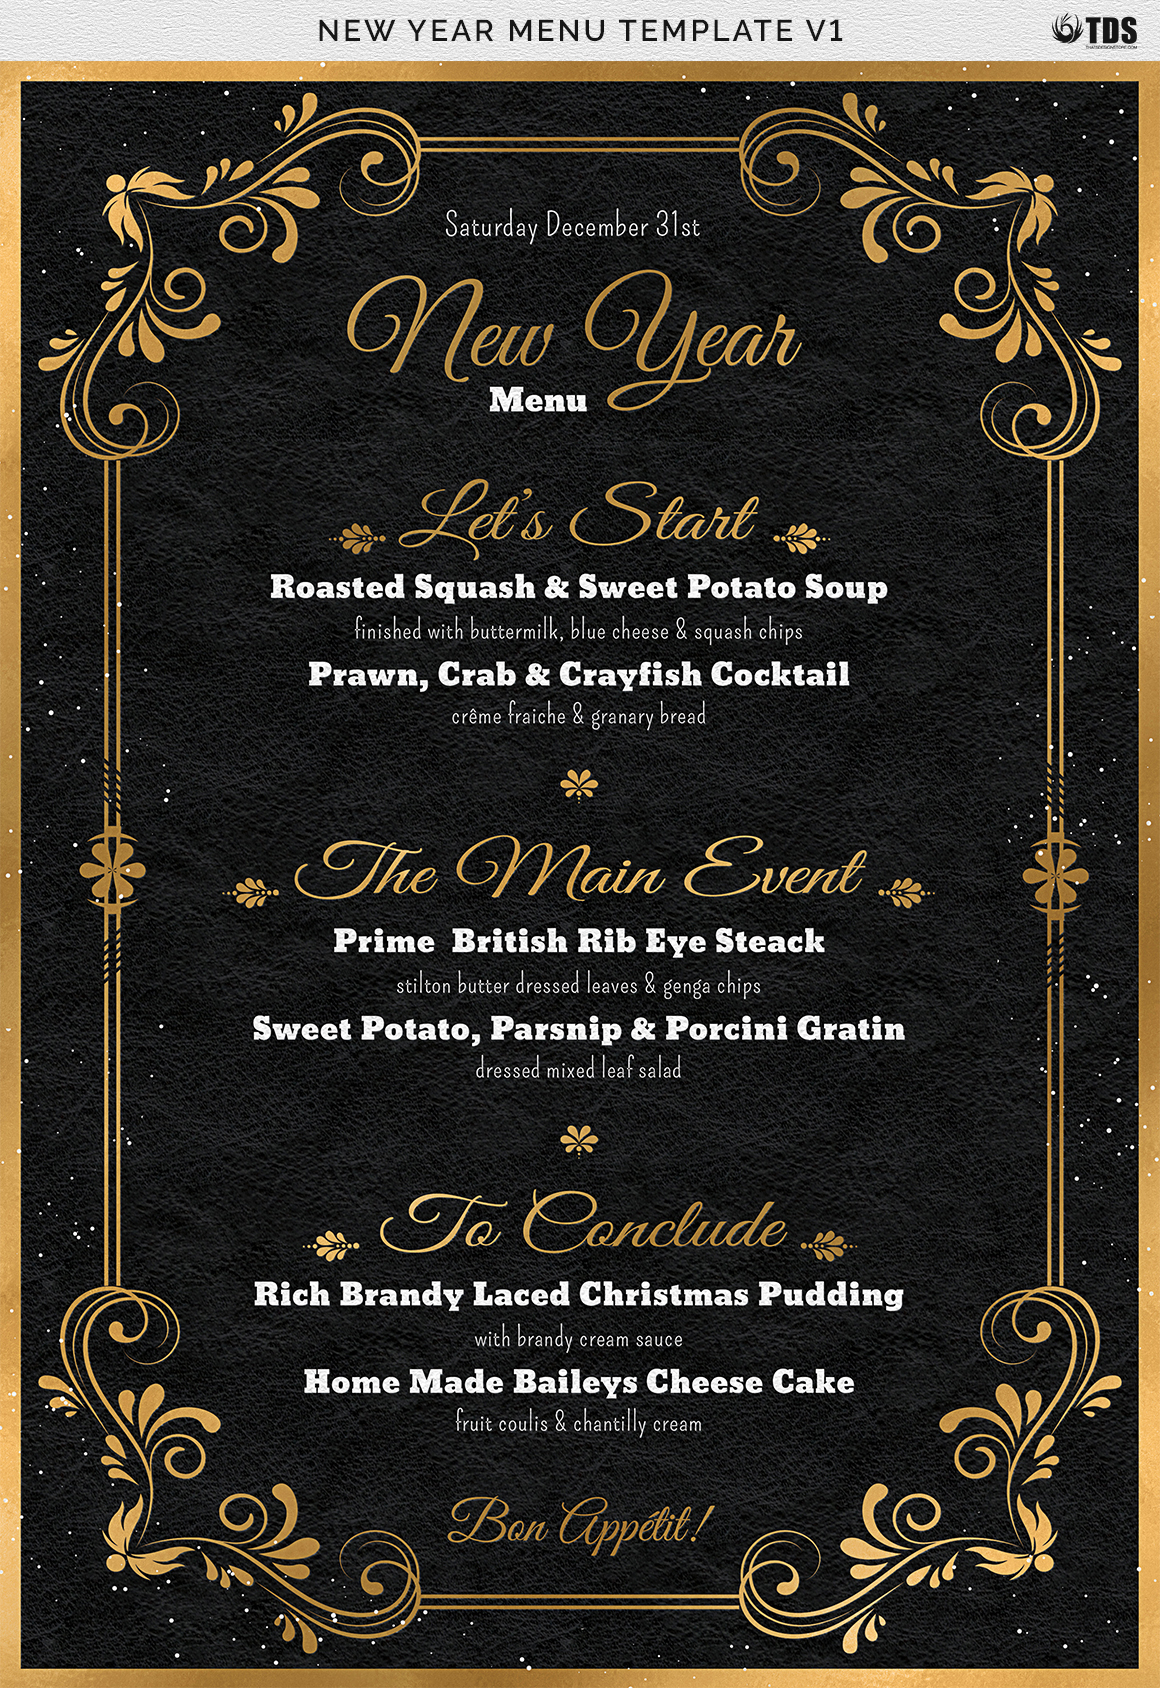 New Year Menu Template V1 example image 14